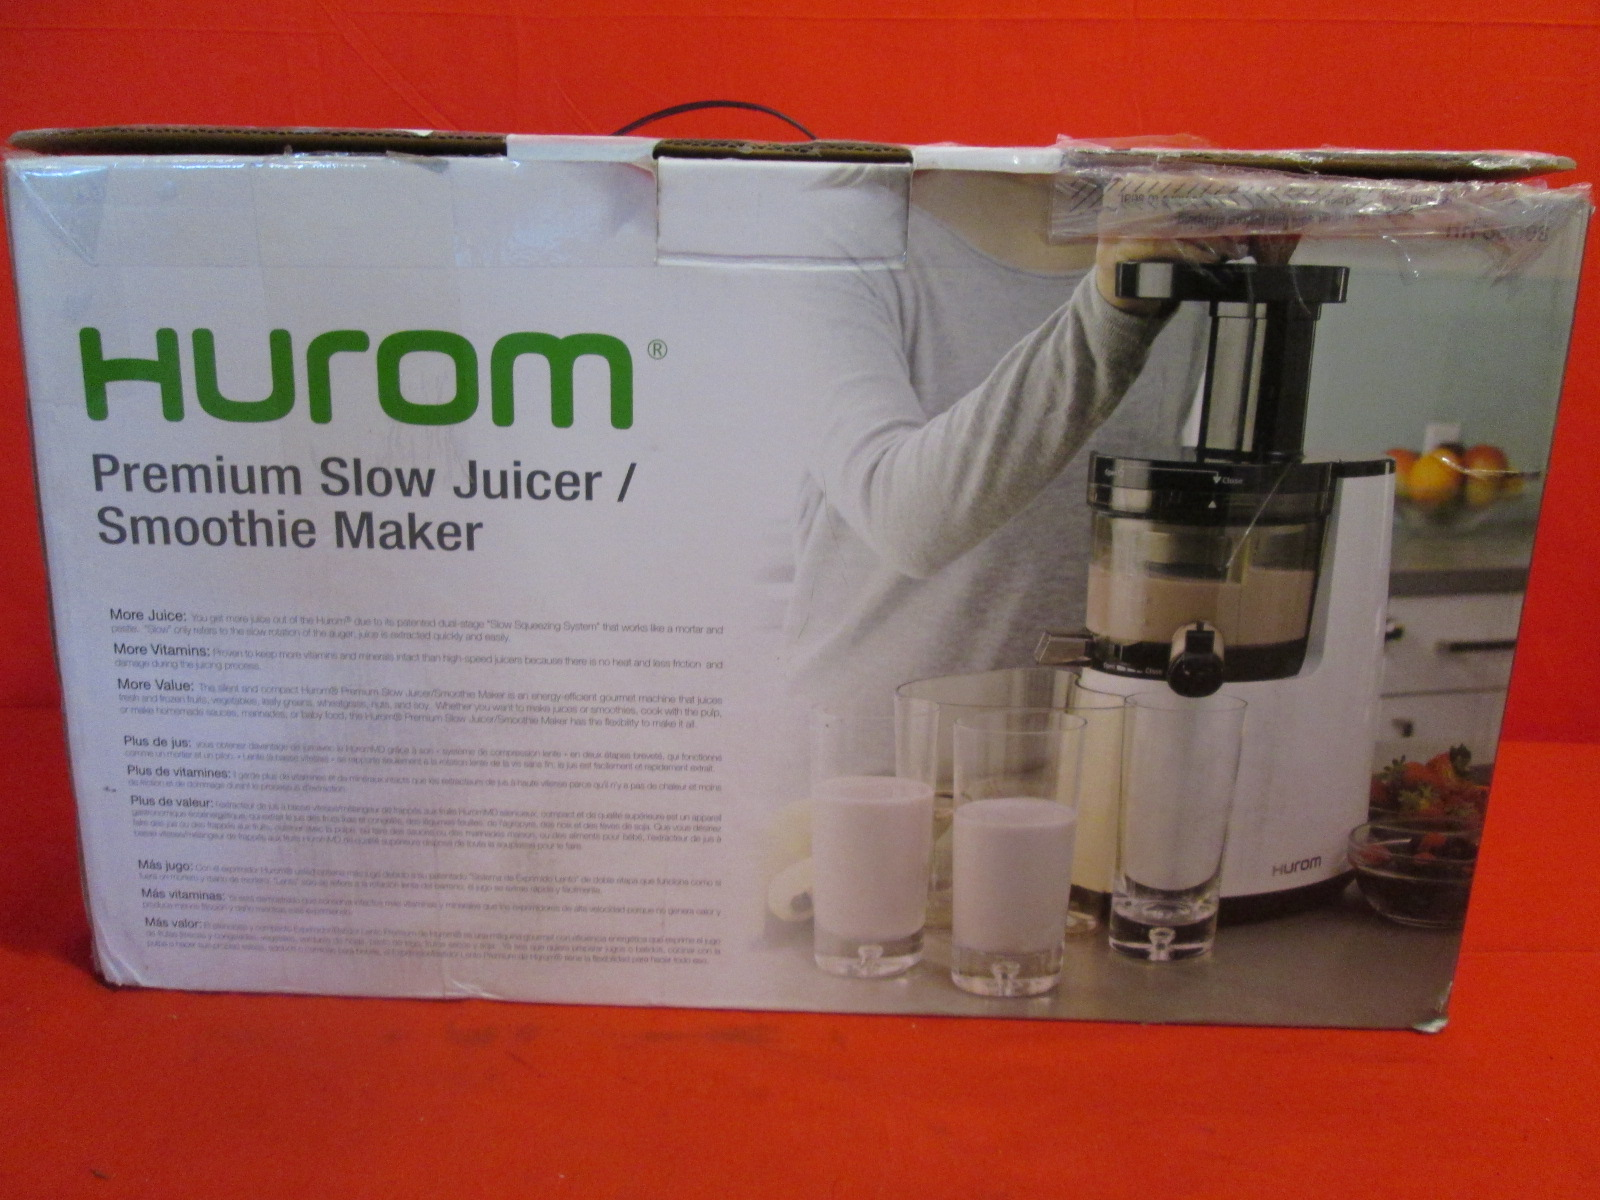 Hurom Hh Premium Slow Juicer : Hurom Premium Masticating Slow Juicer & Smoothie Maker HH-WBB07